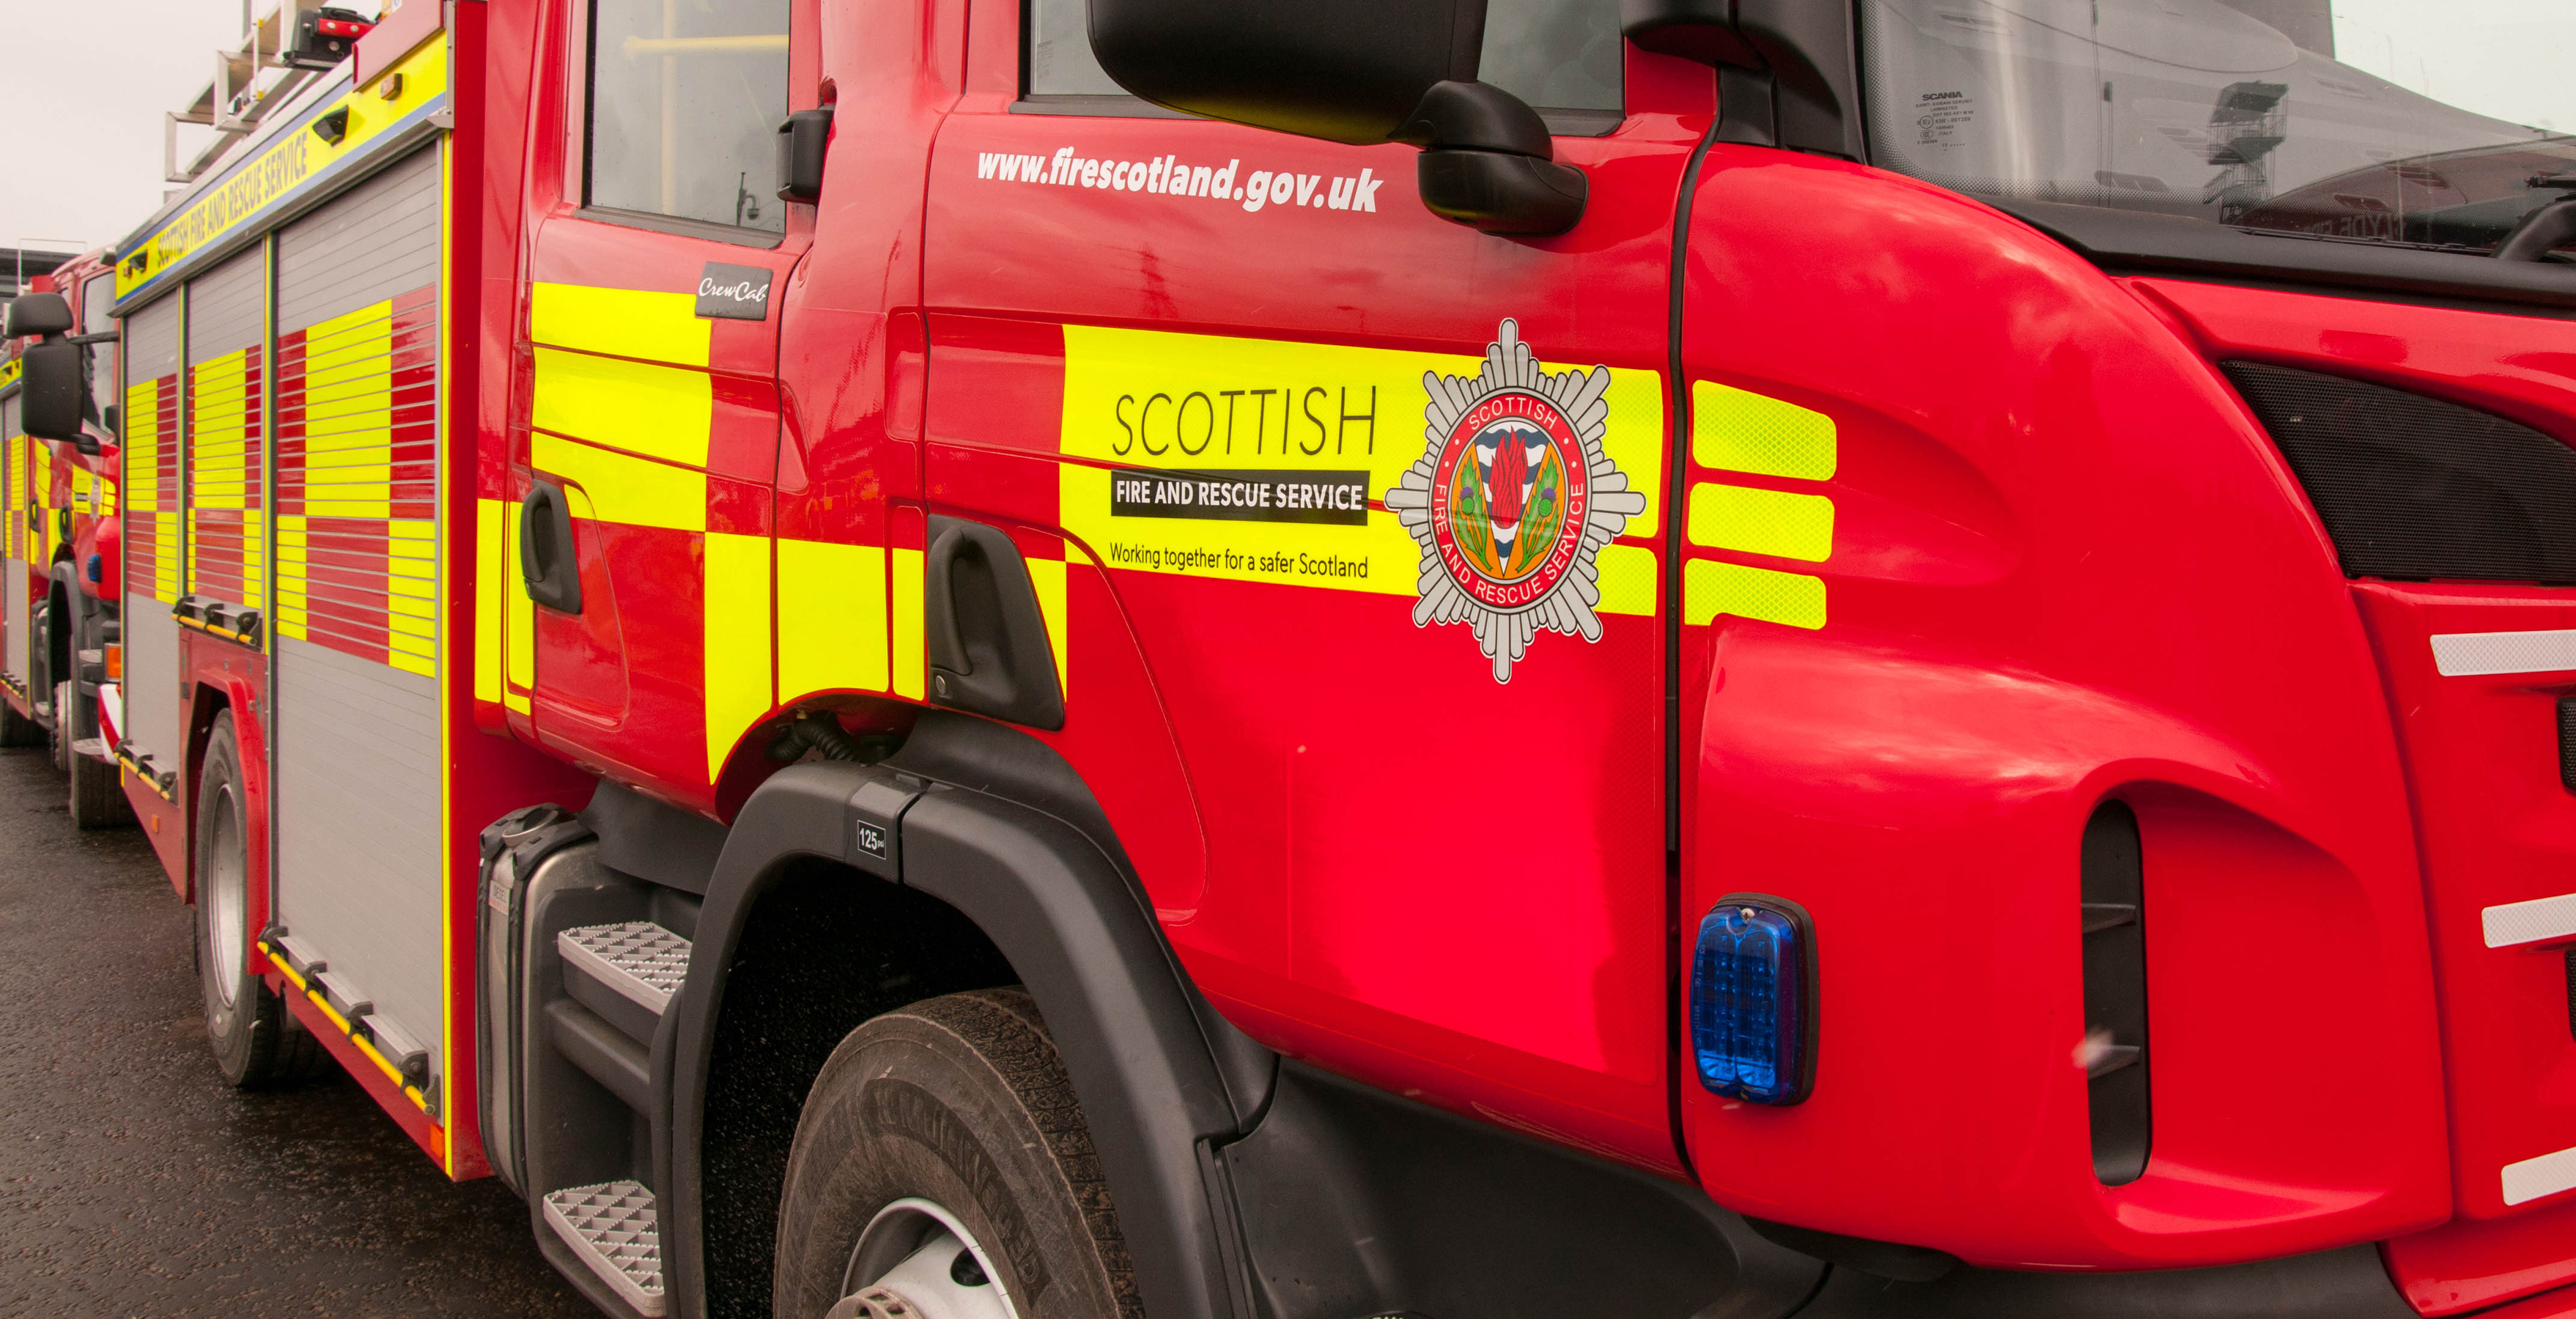 Fire-related injuries fall across North Ayrshire